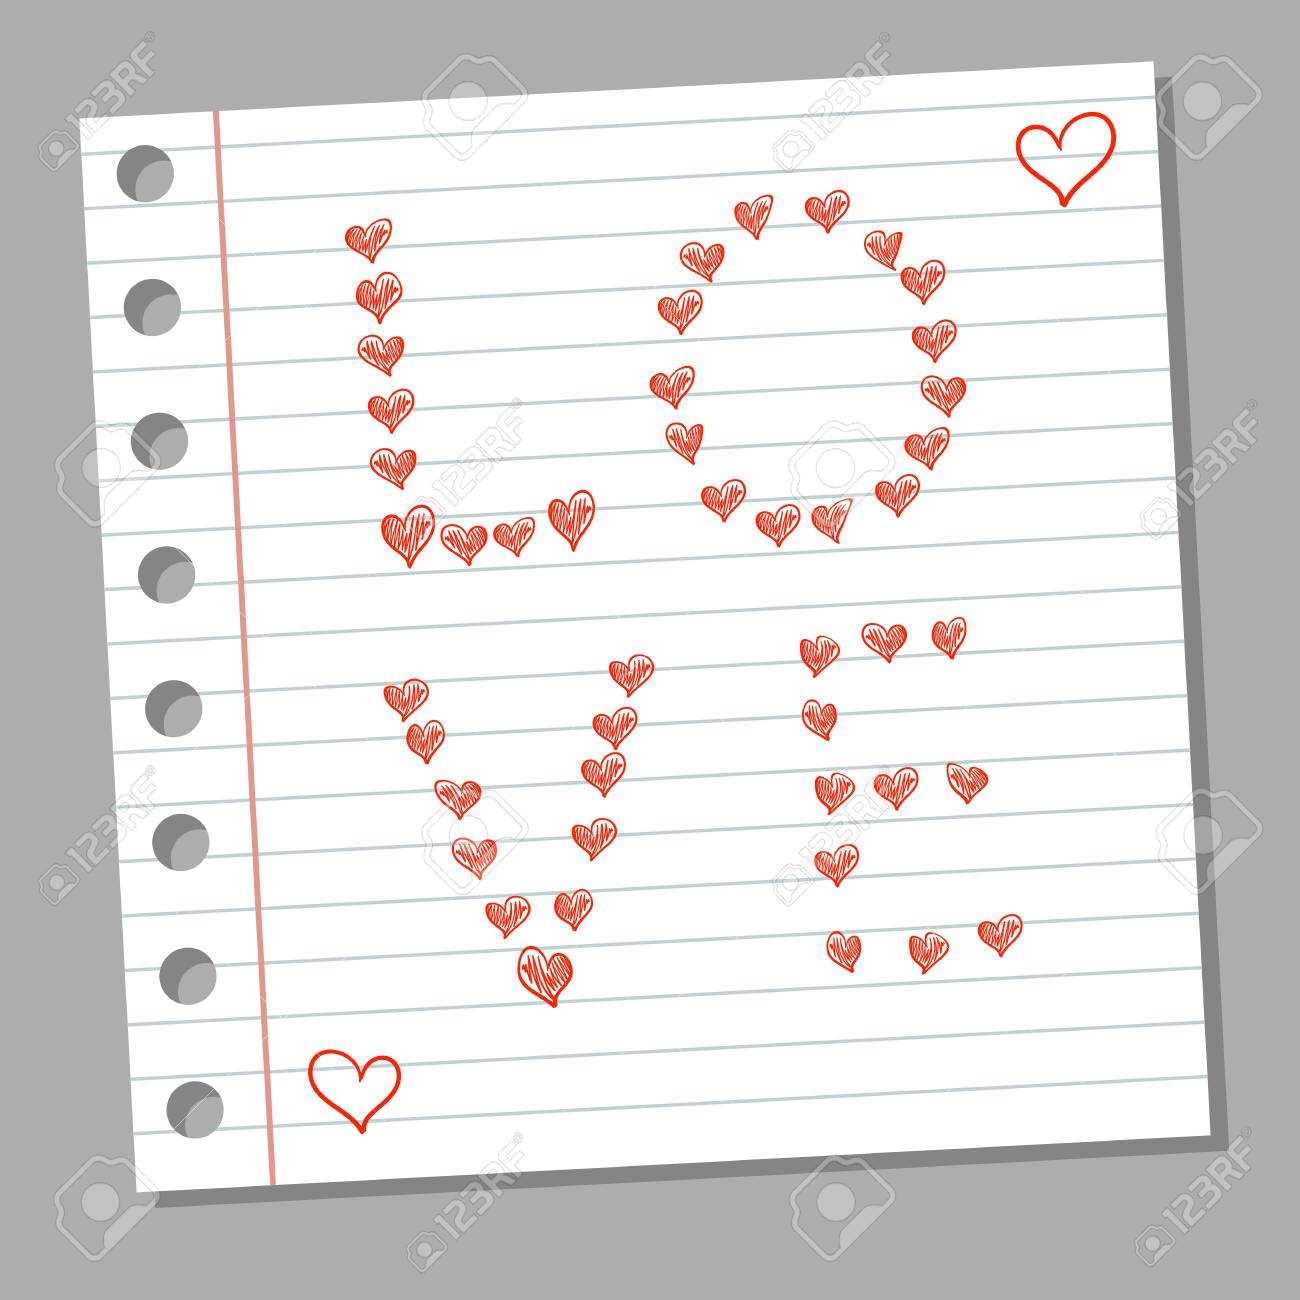 doodle hearts and word love on notebook page royalty free cliparts